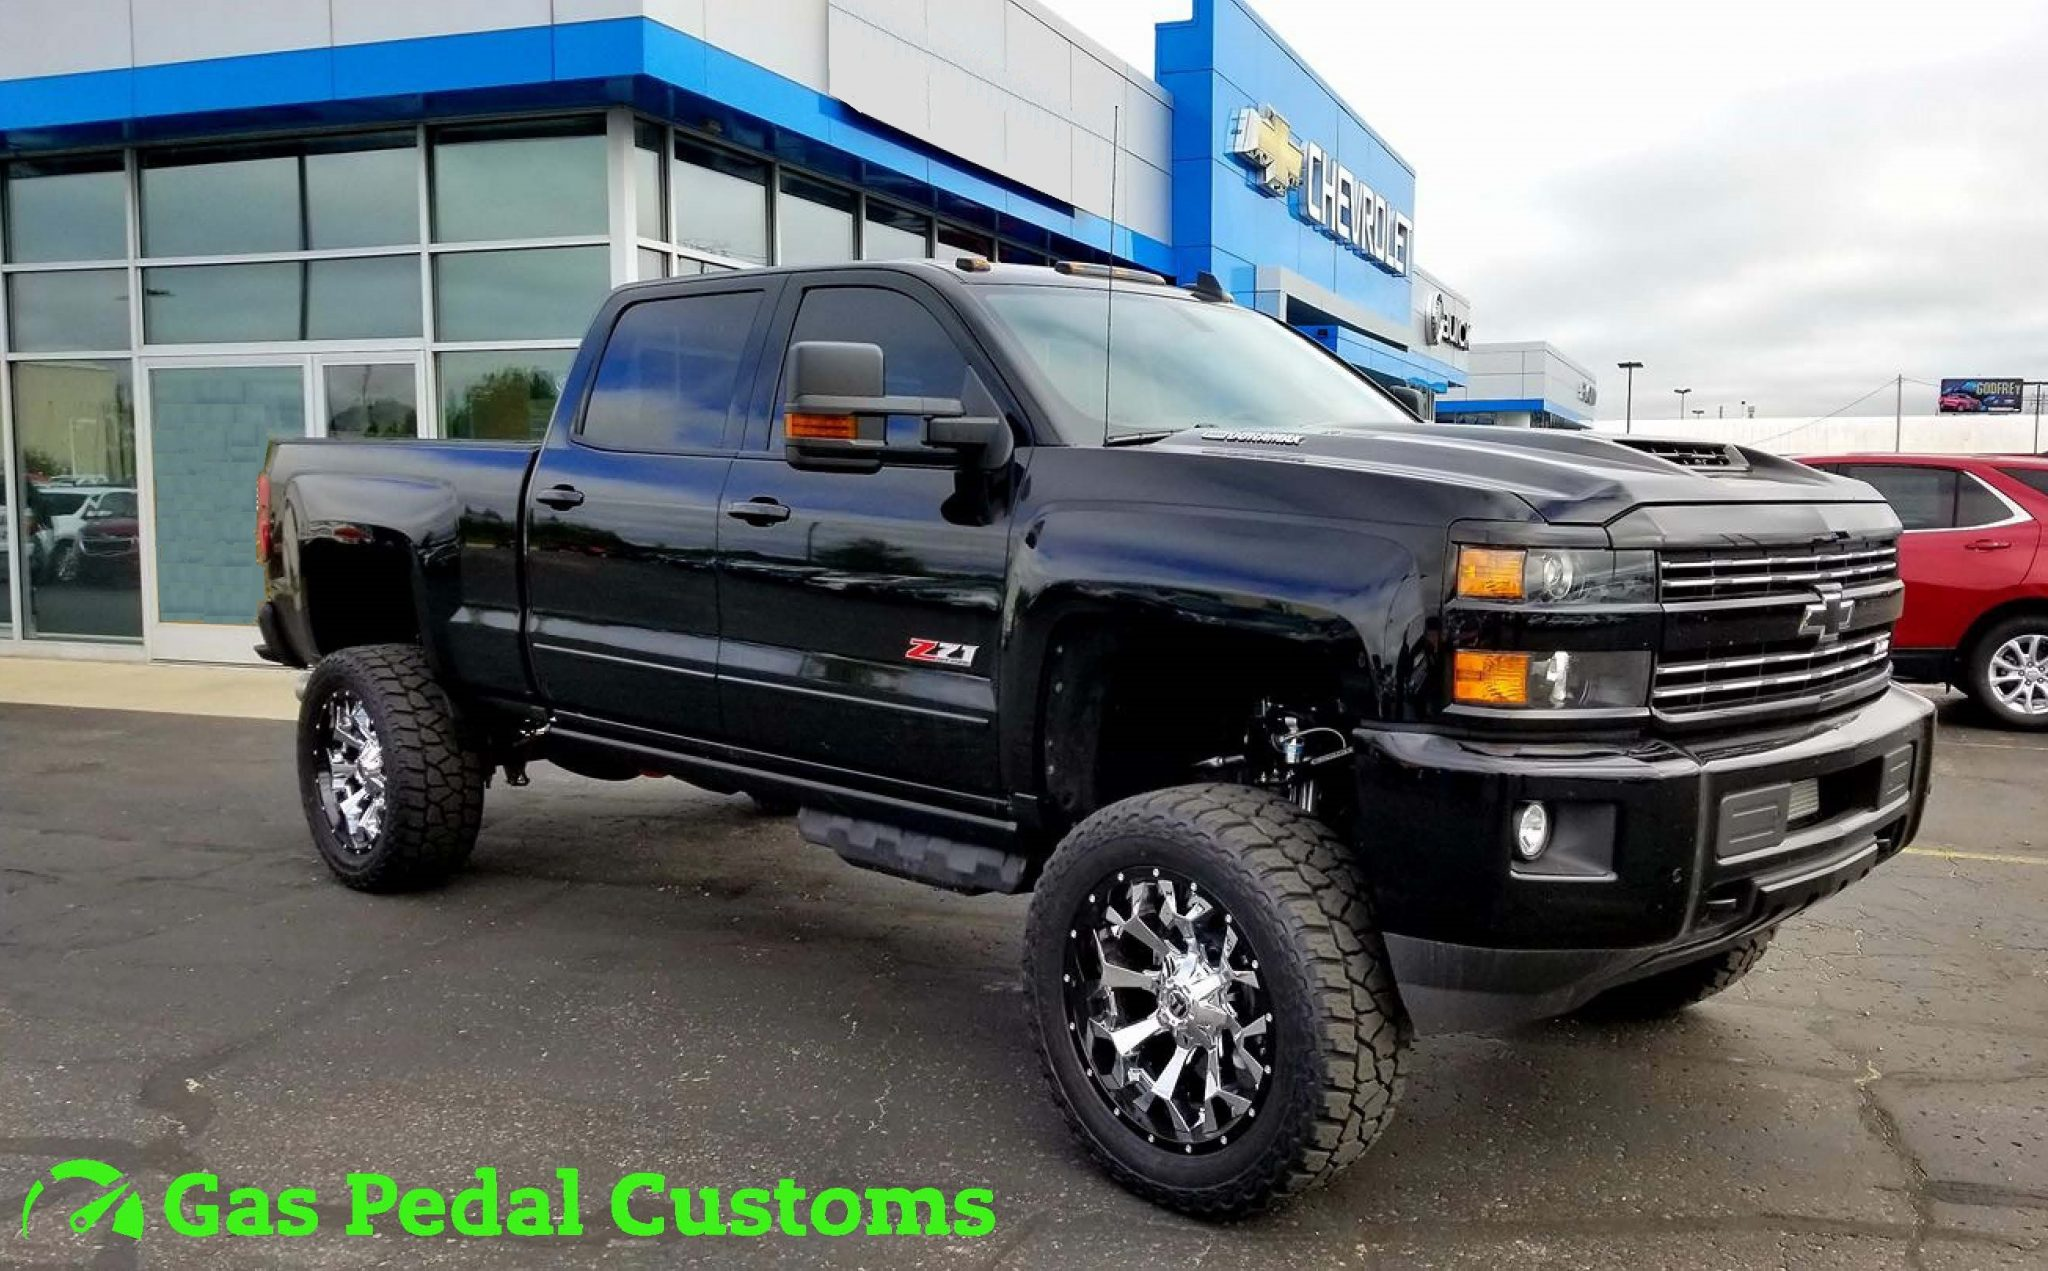 Custom Built Trucks - Gas Pedal Customs - Automotive Customizing